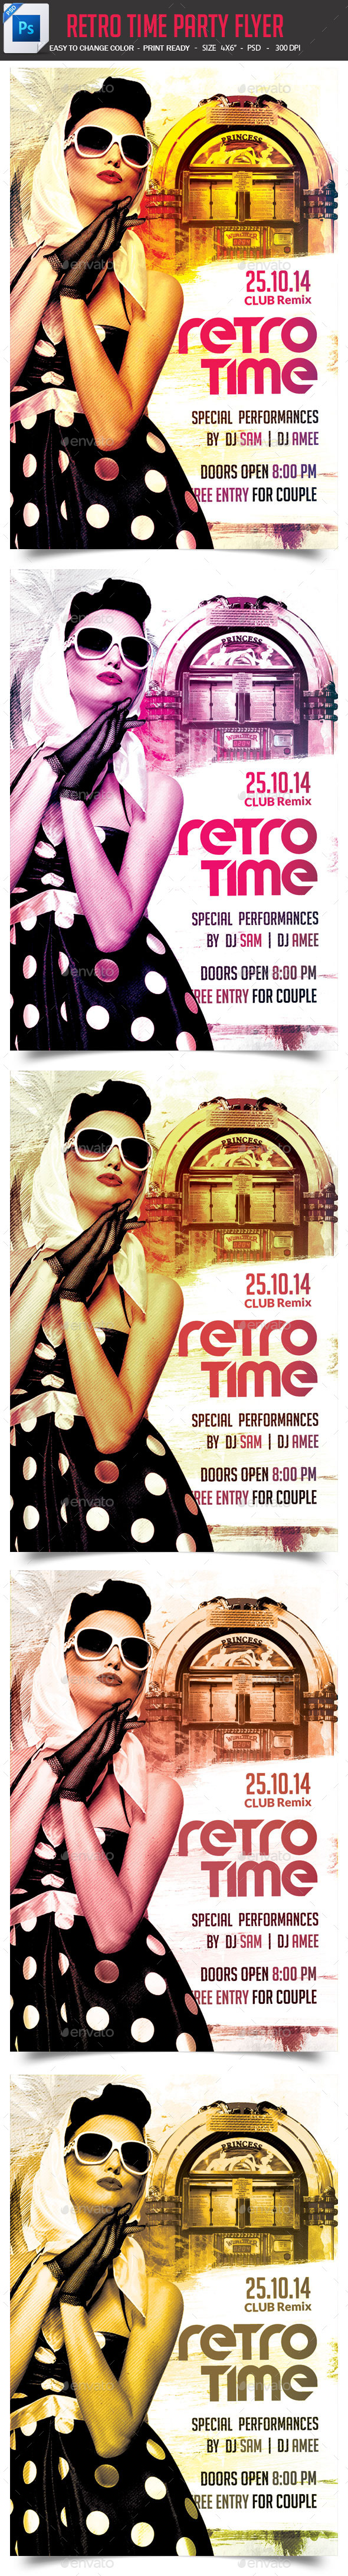 Retro Time Party Flyer